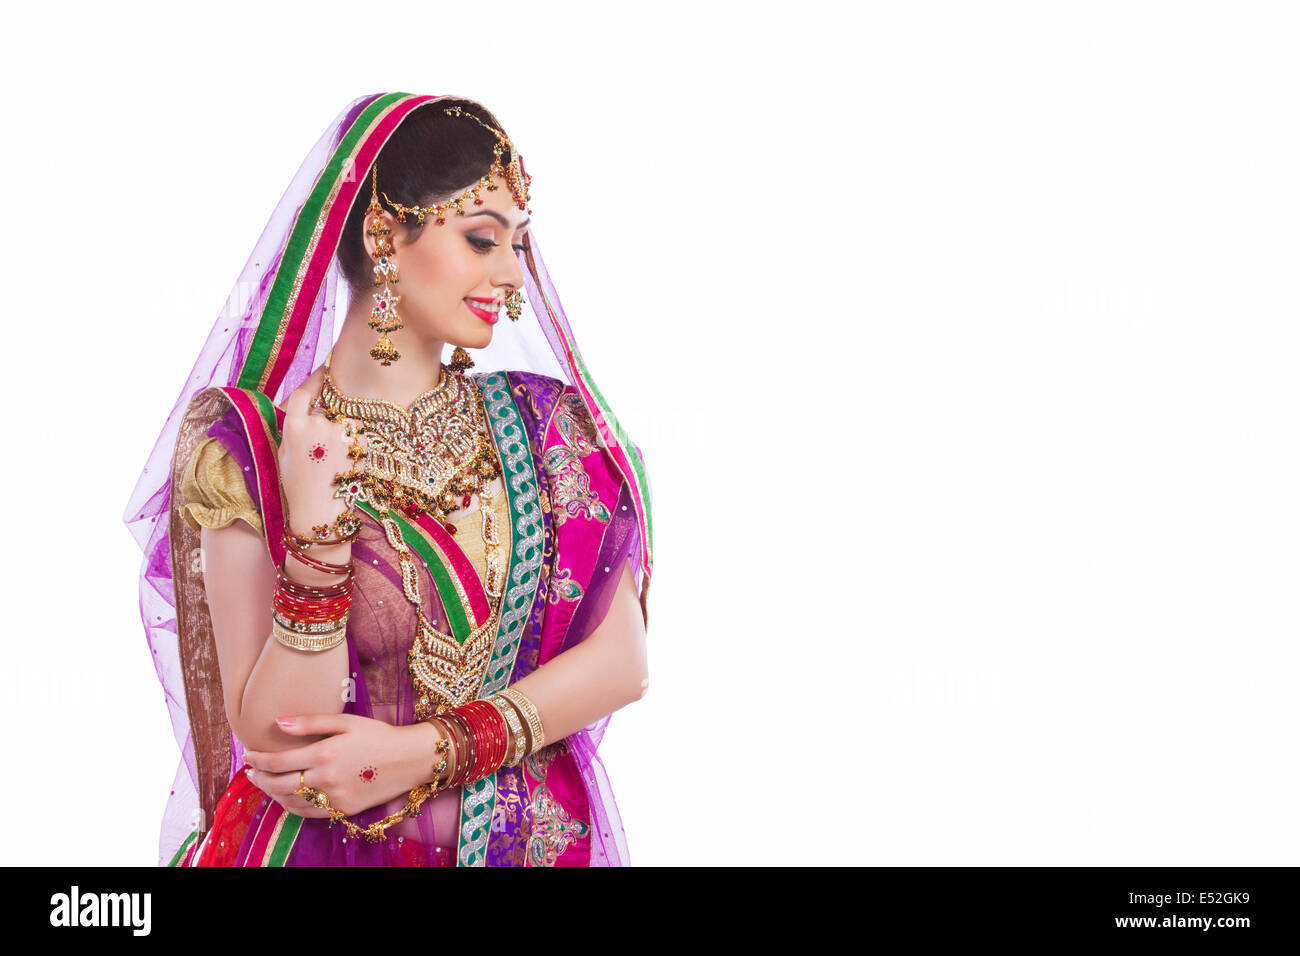 Indian Wedding Cut Out Stock Images & Pictures - Alamy